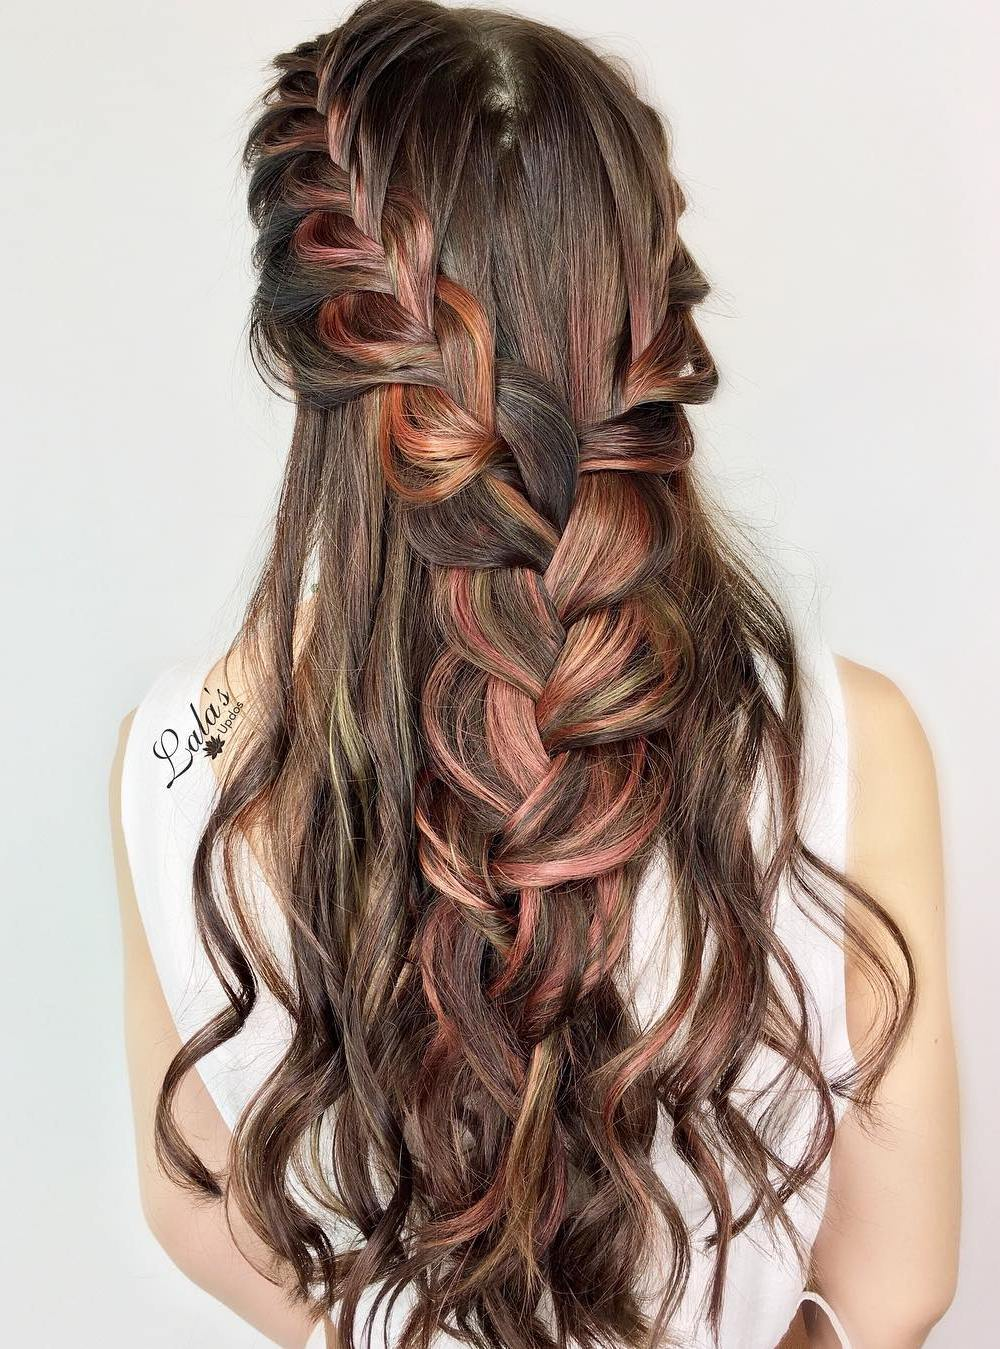 Two Braids Into One Half Up Hairstyle